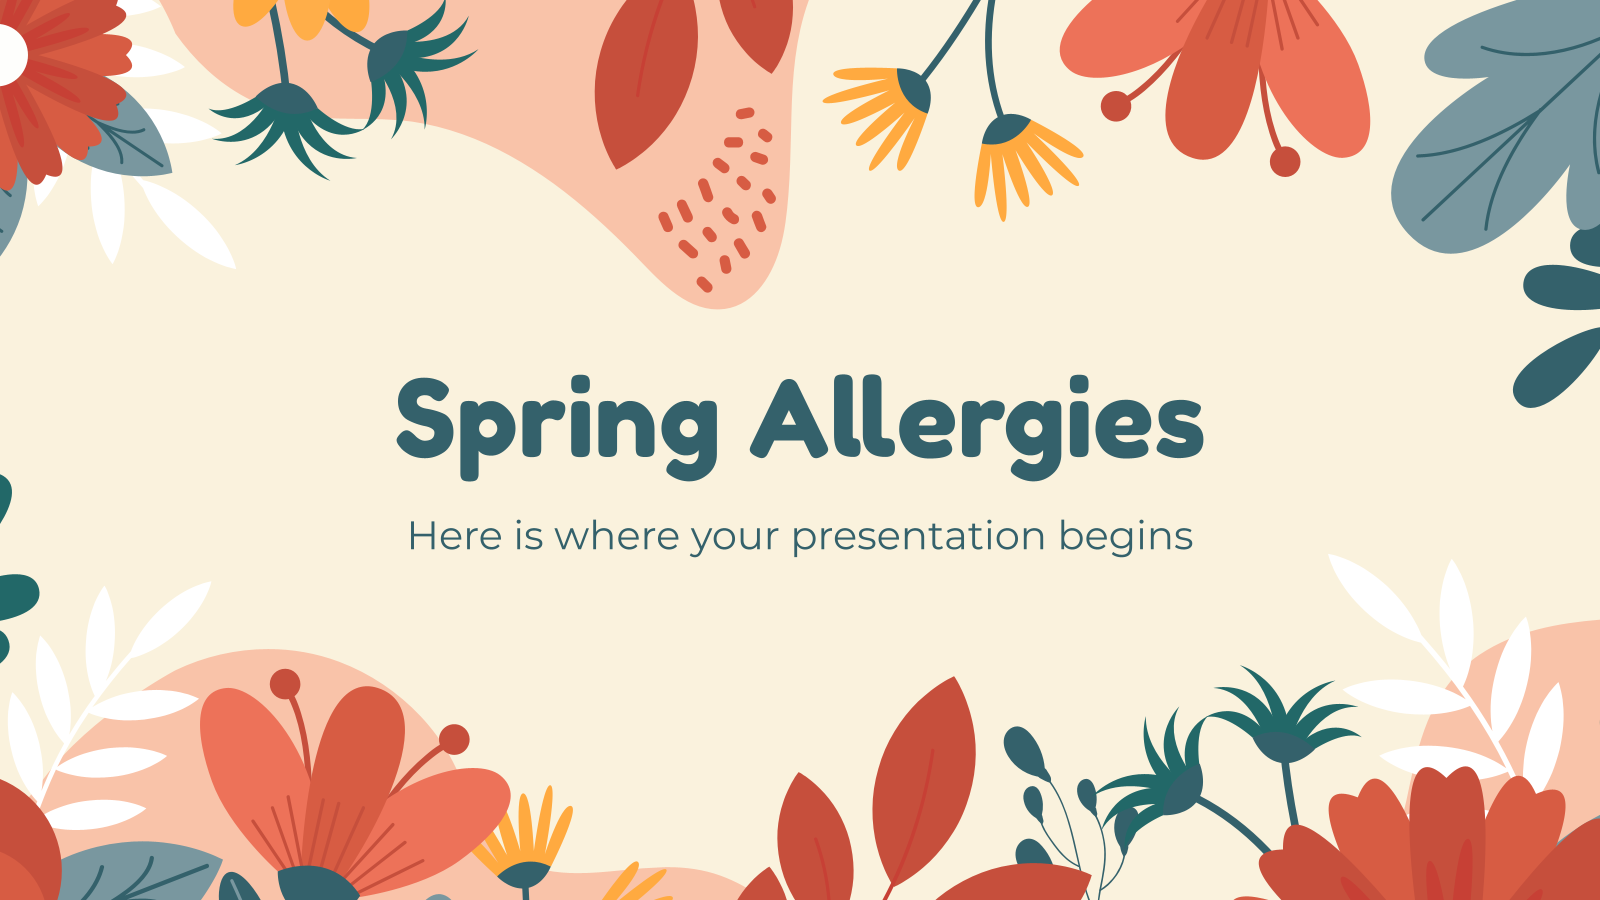 Spring Allergies presentation template